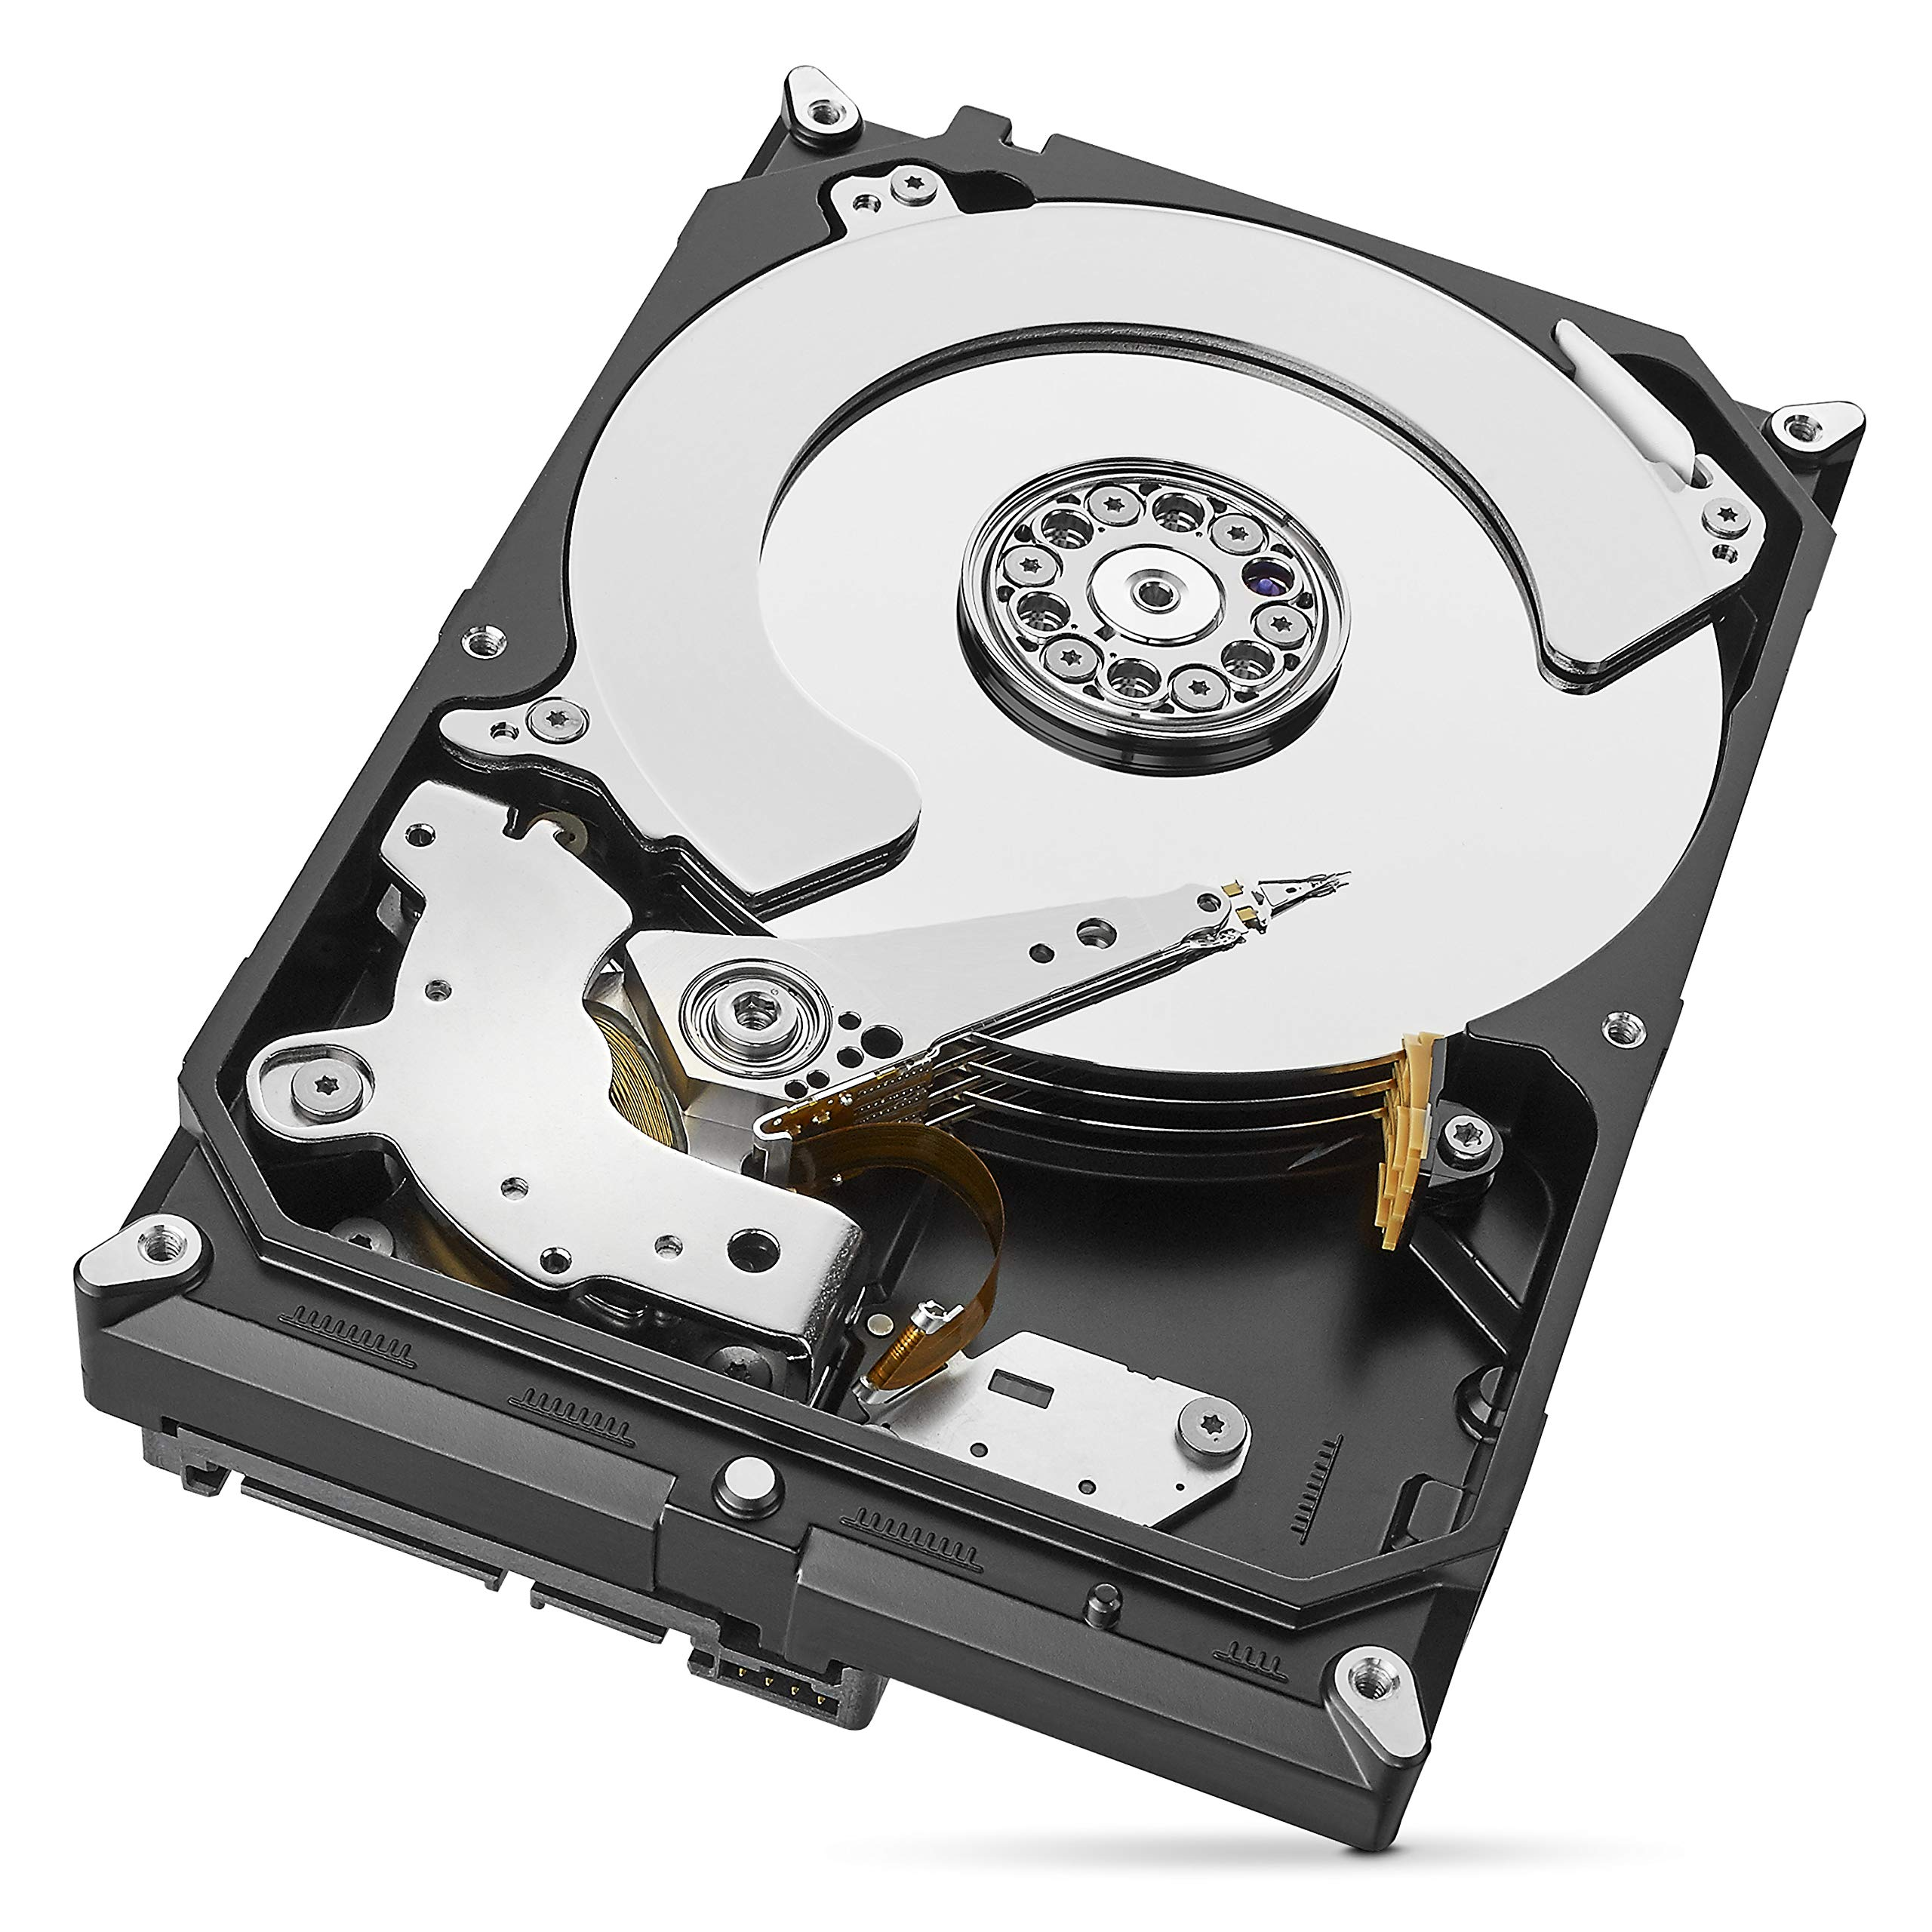 Seagate IronWolf 3 TB NAS RAID Internal Hard Drive - 5,900 RPM SATA 6 Gb/s 3.5-inch - Frustration Free Packaging (ST3000VN007) by Seagate (Image #2)